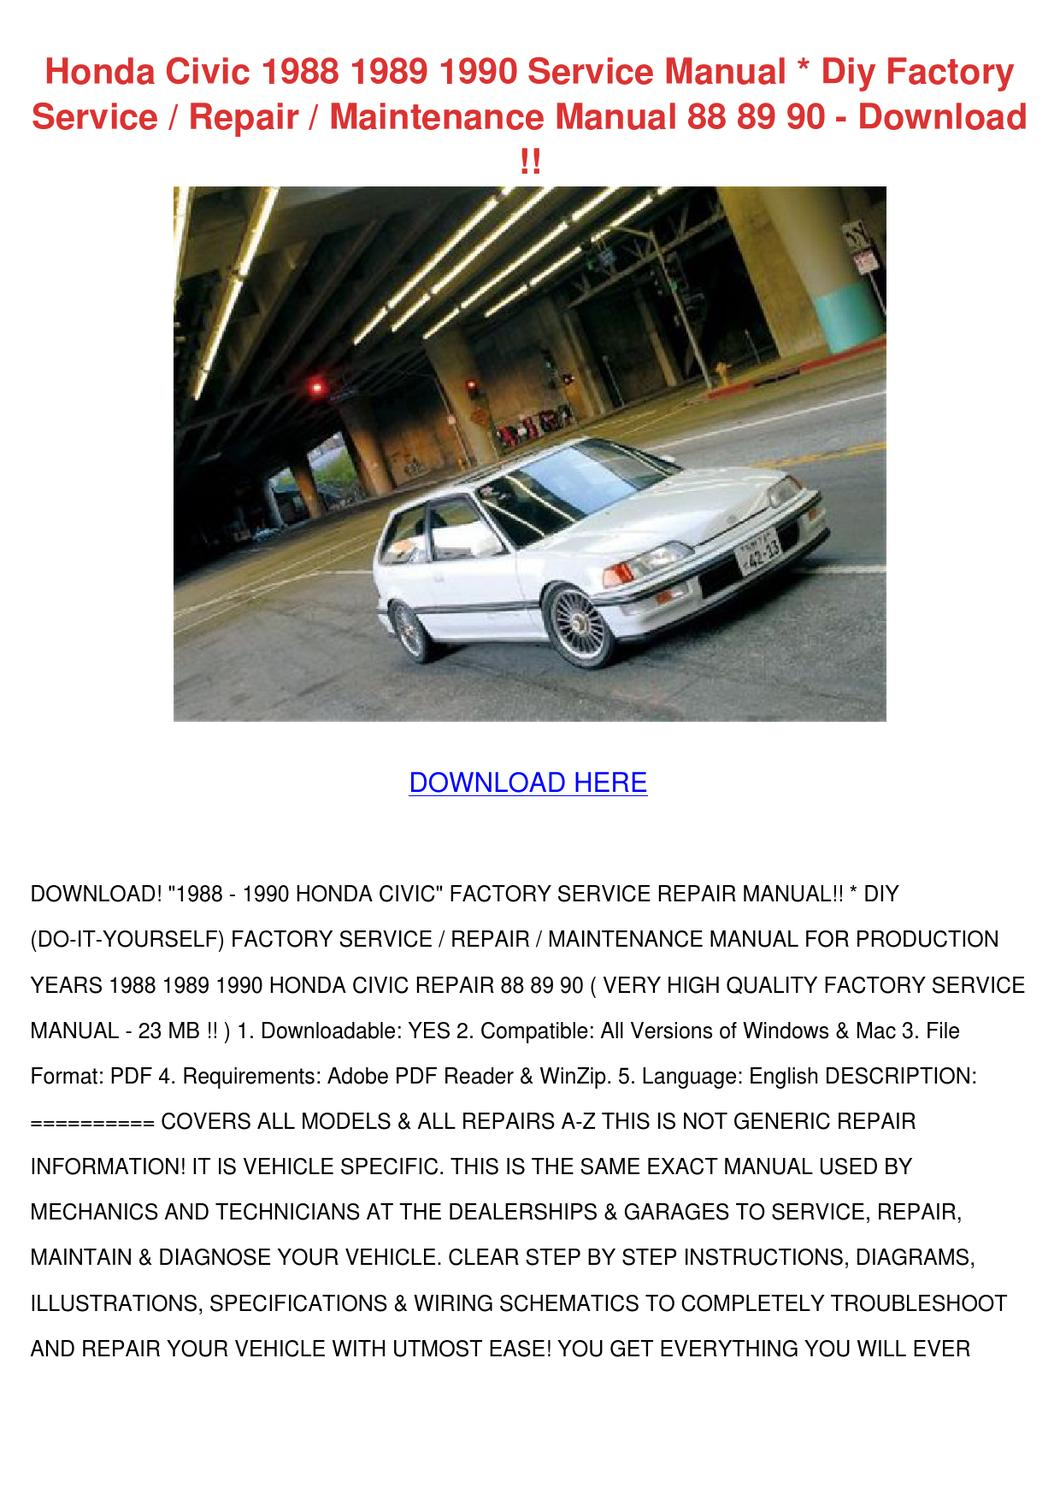 honda civic 1988 1989 1990 service manual diy by althea ondrusek issuu